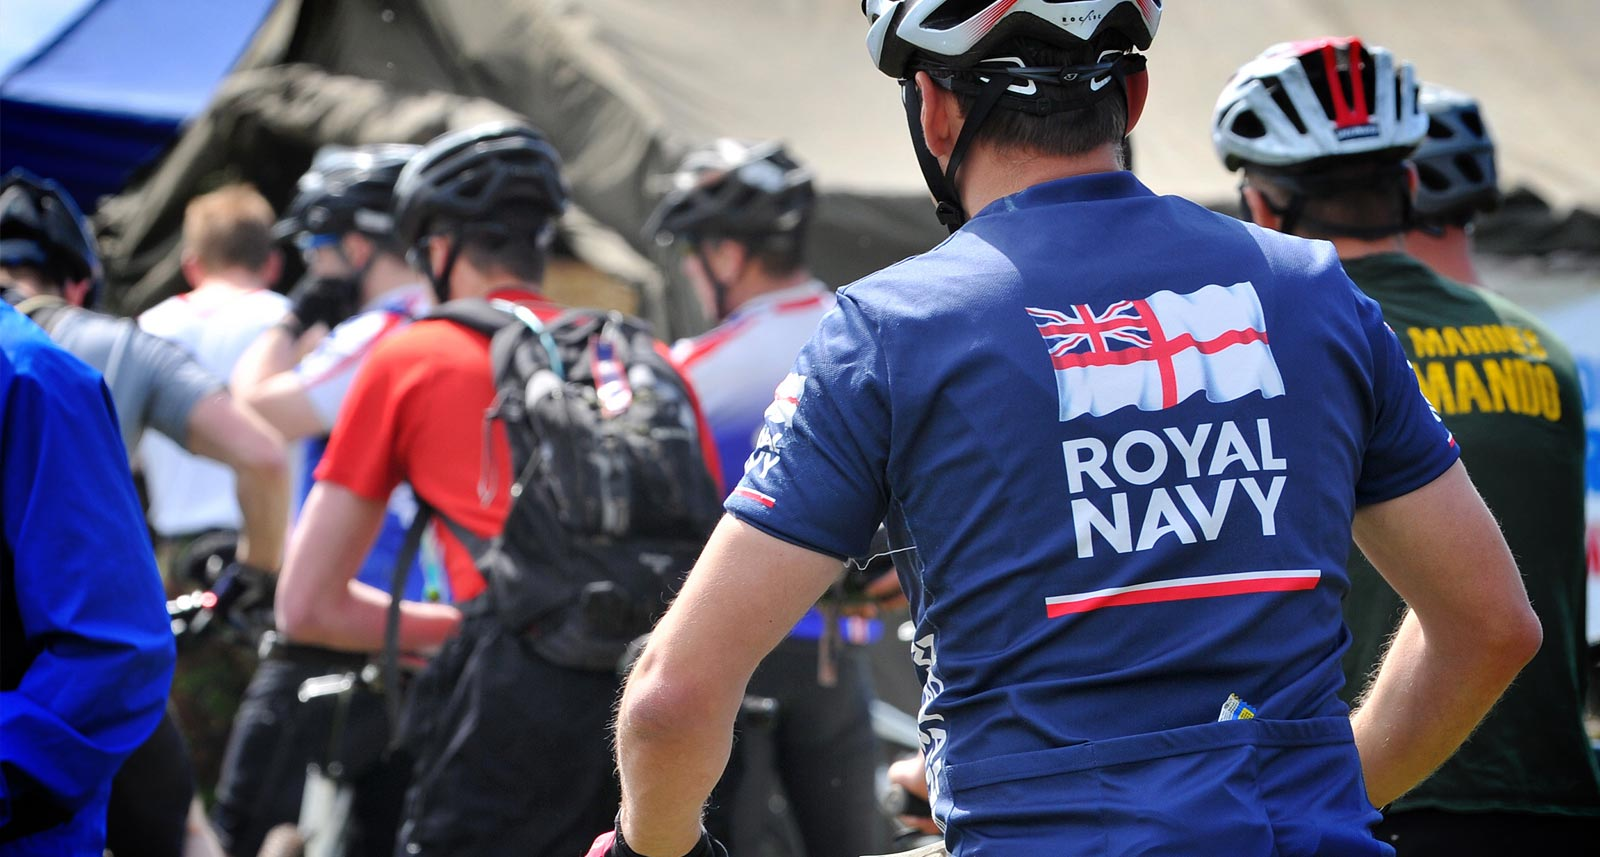 Royal Navy Association - Web Designers Torquay Devon